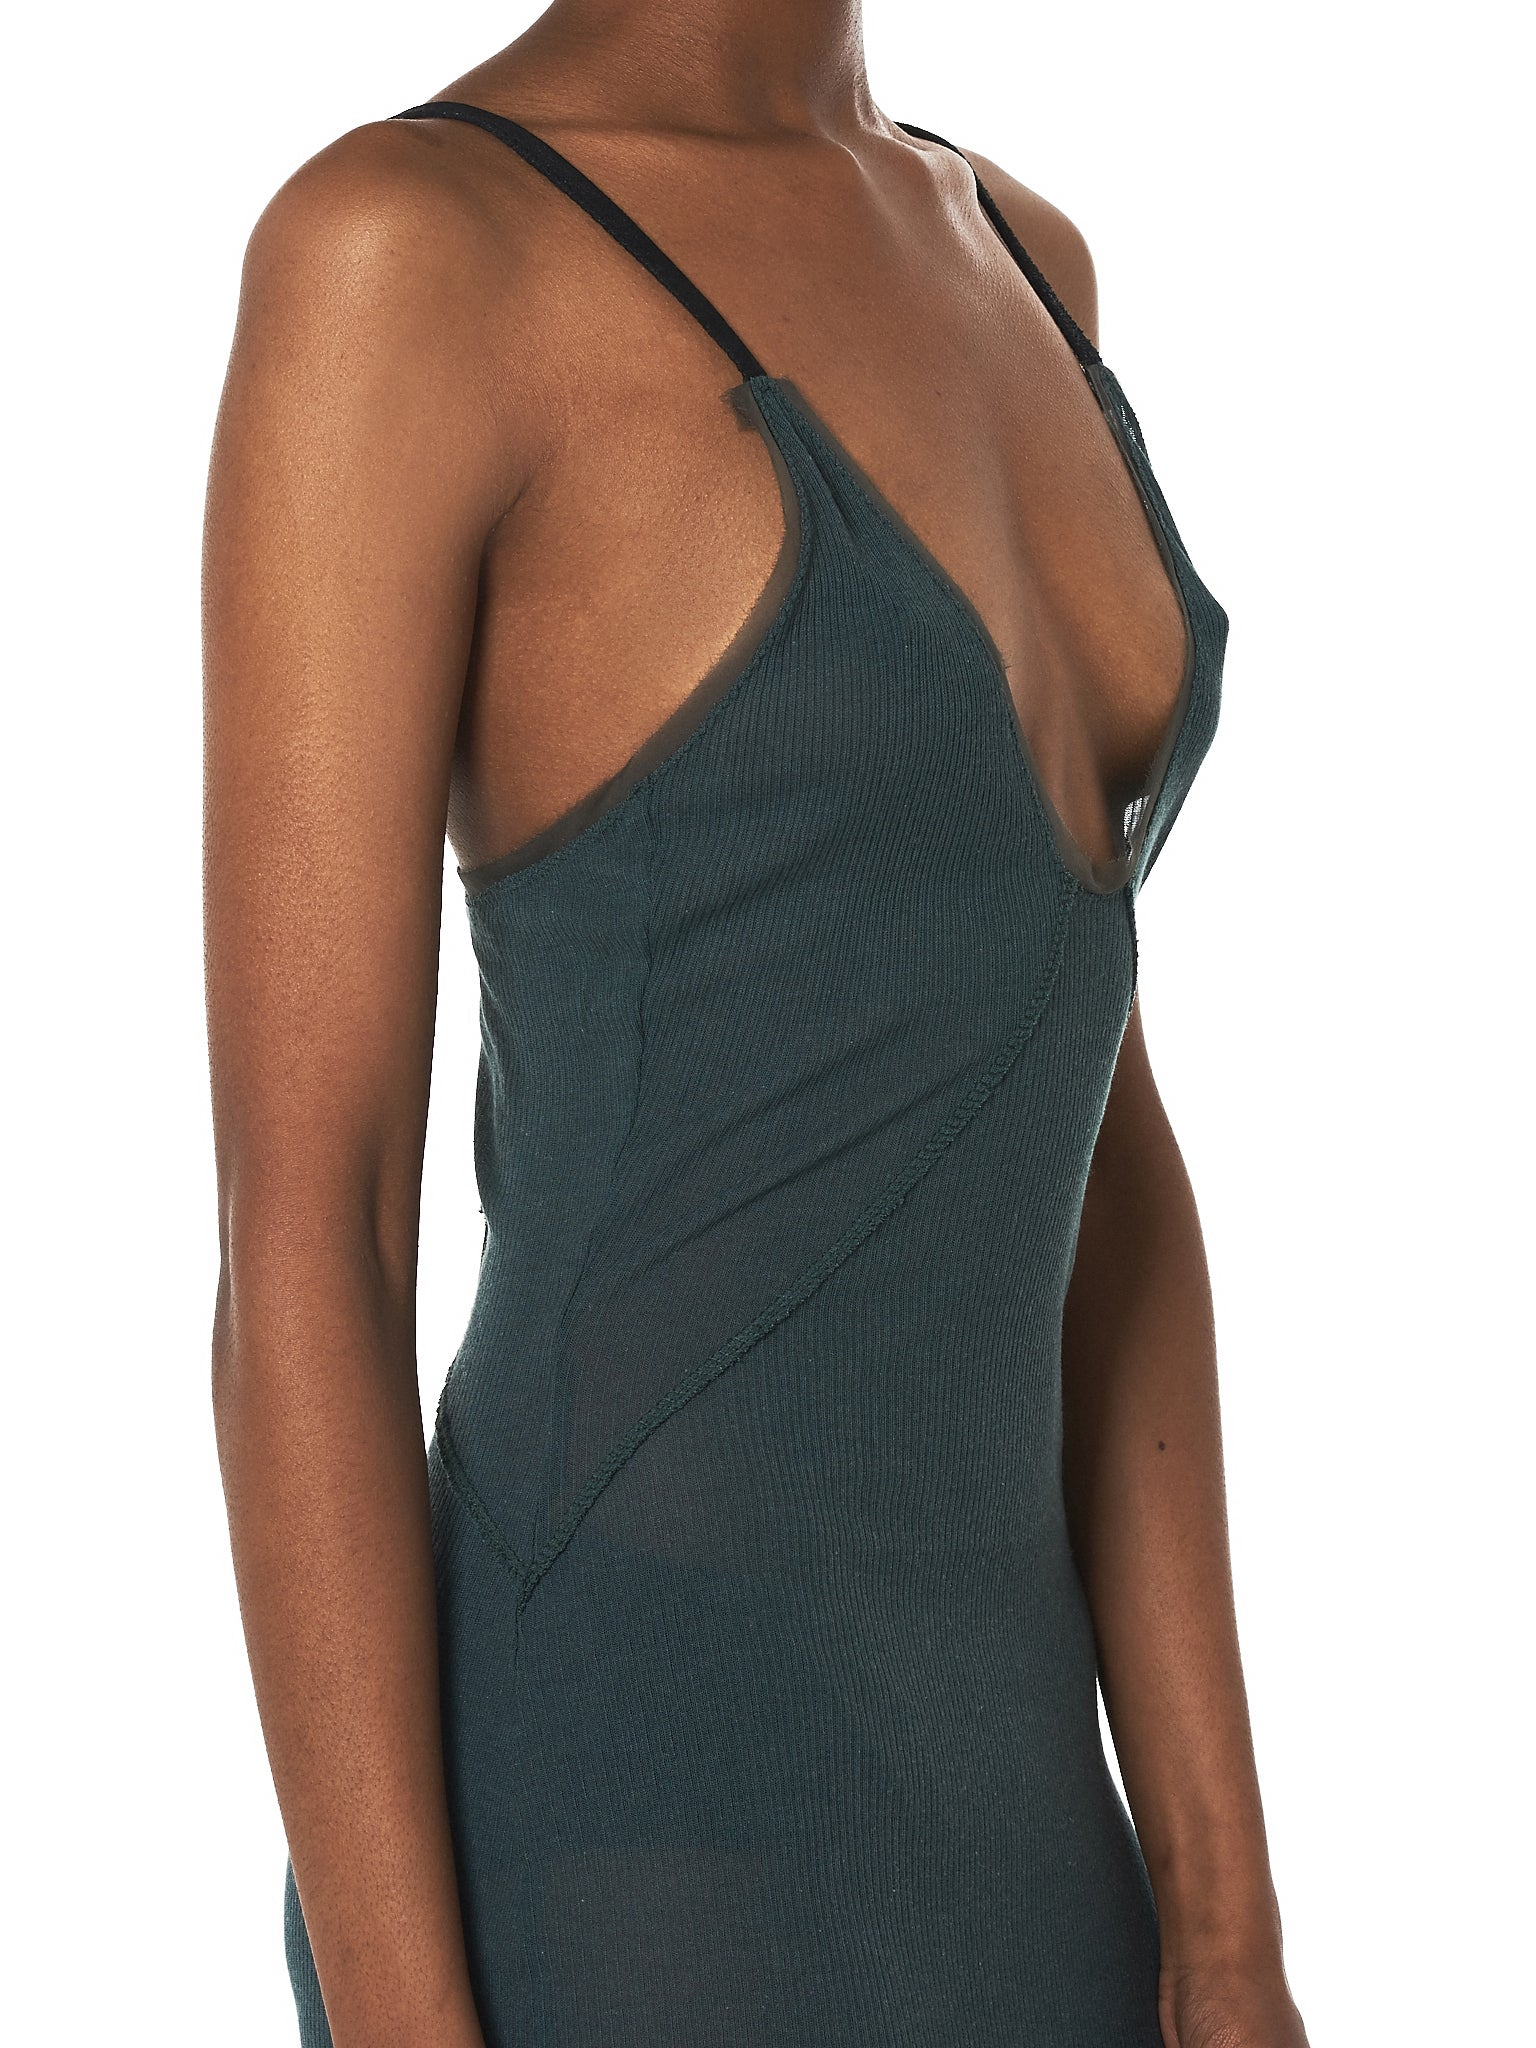 Alessandra Marchi Dress - Hlorenzo Detail 1